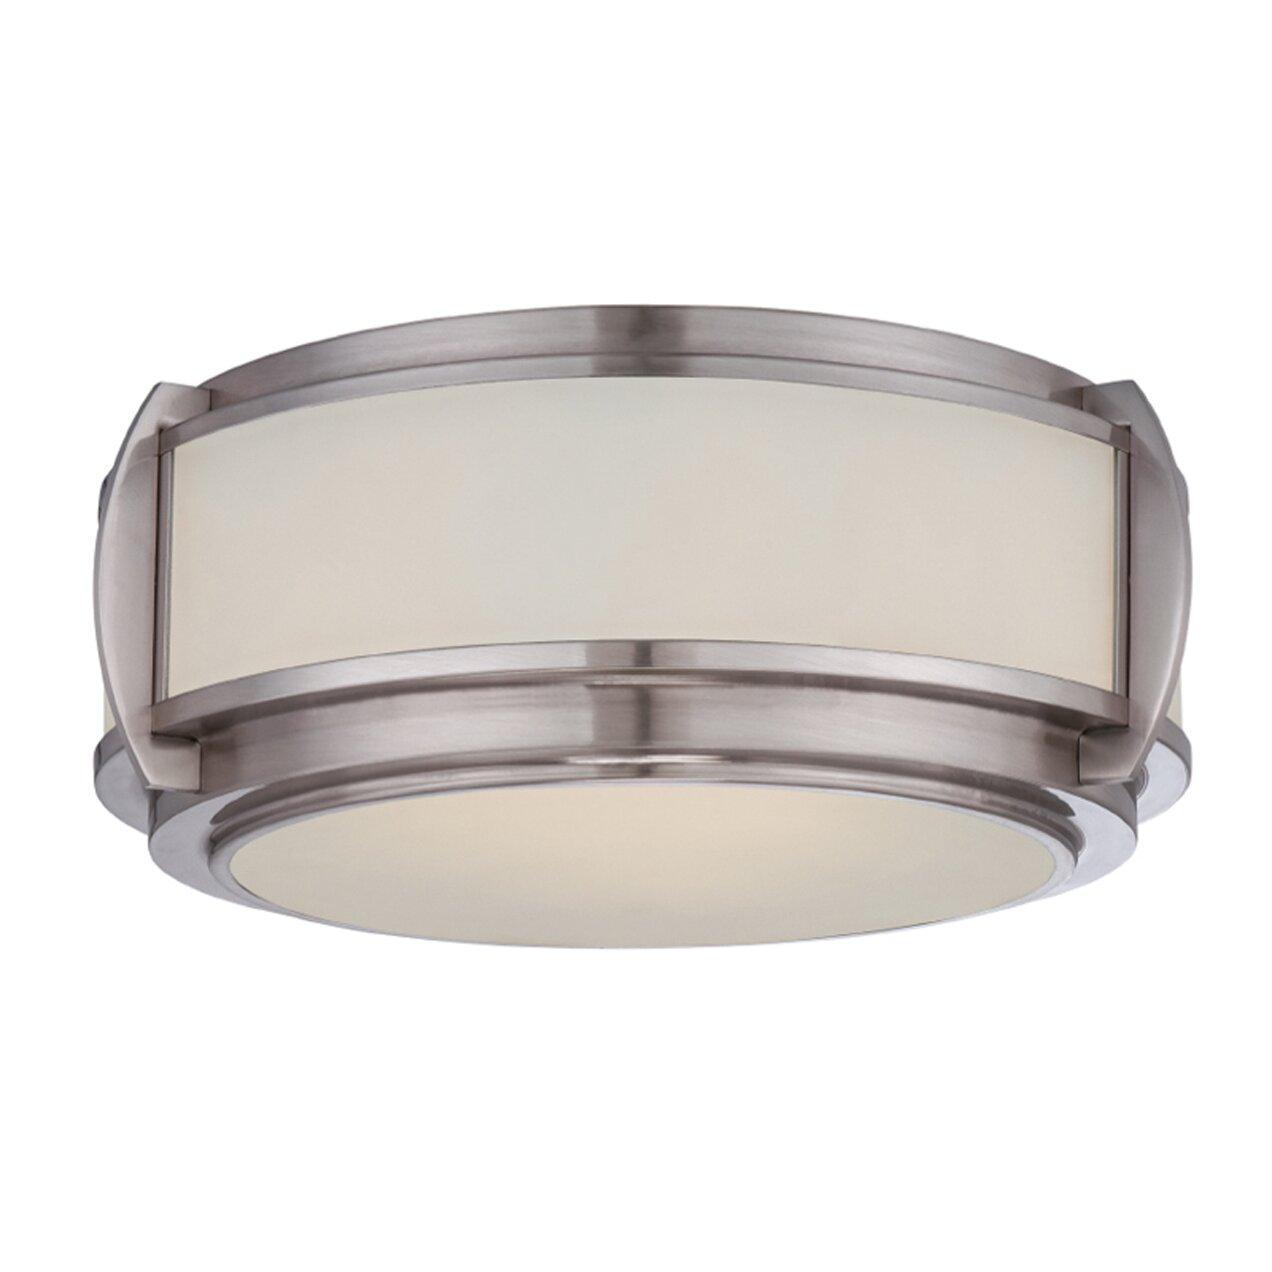 Quoizel 3 Light Flush Ceiling Light & Reviews